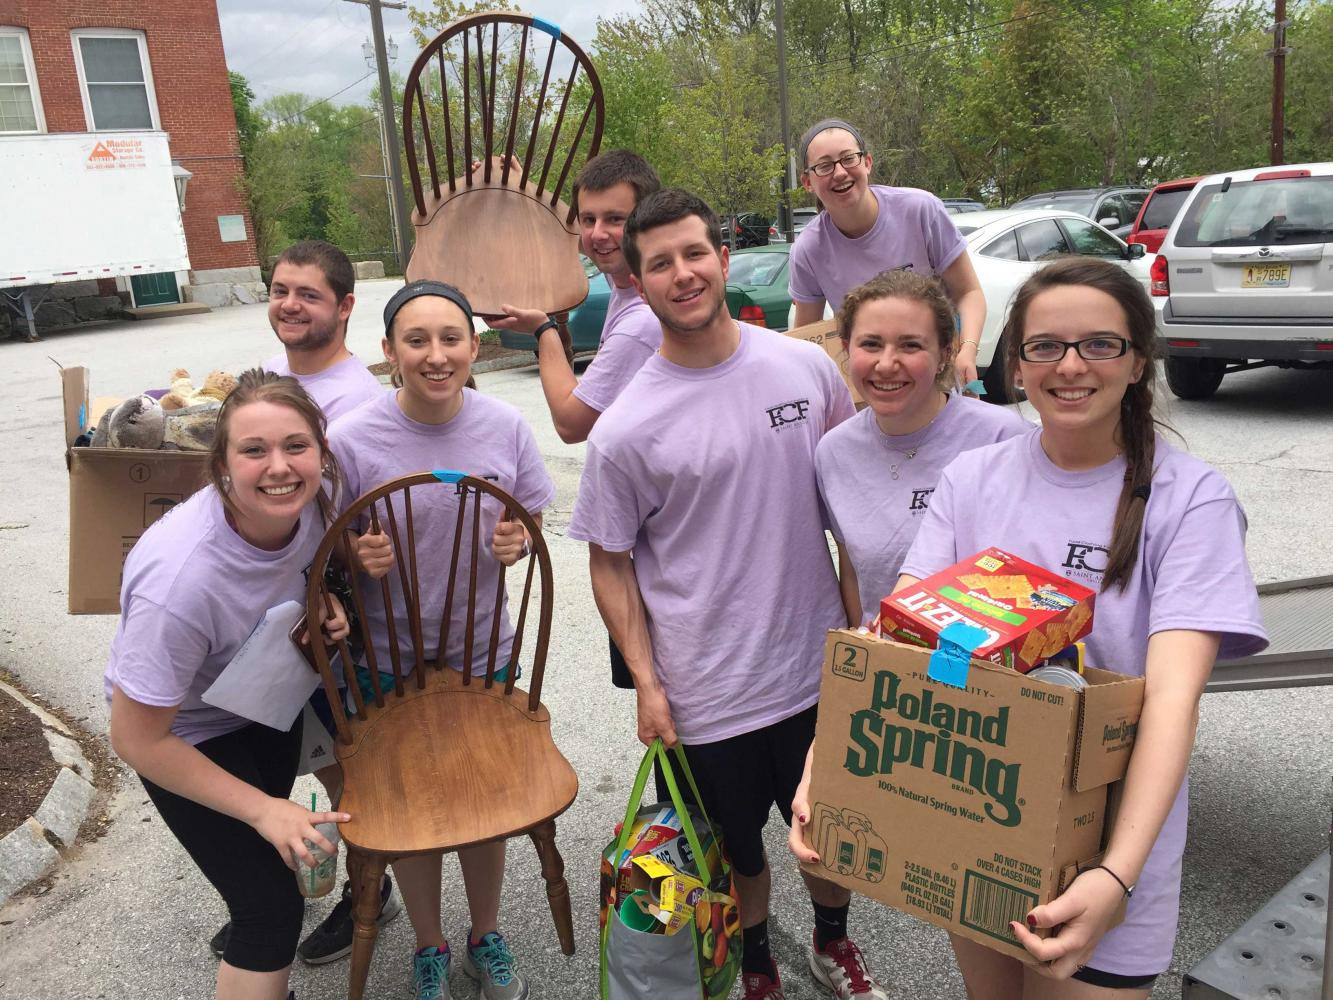 (Left to right): Amy Vachon '17, Charles Dooley '16, Madison Vigneault '18, Josh Post '16, Paul Trabucco '16, Amelia Way '16, Mar- garet Lynch '17, and Jessica Gipson '16 at the 2016 Food, Clothing, & Furniture drive.